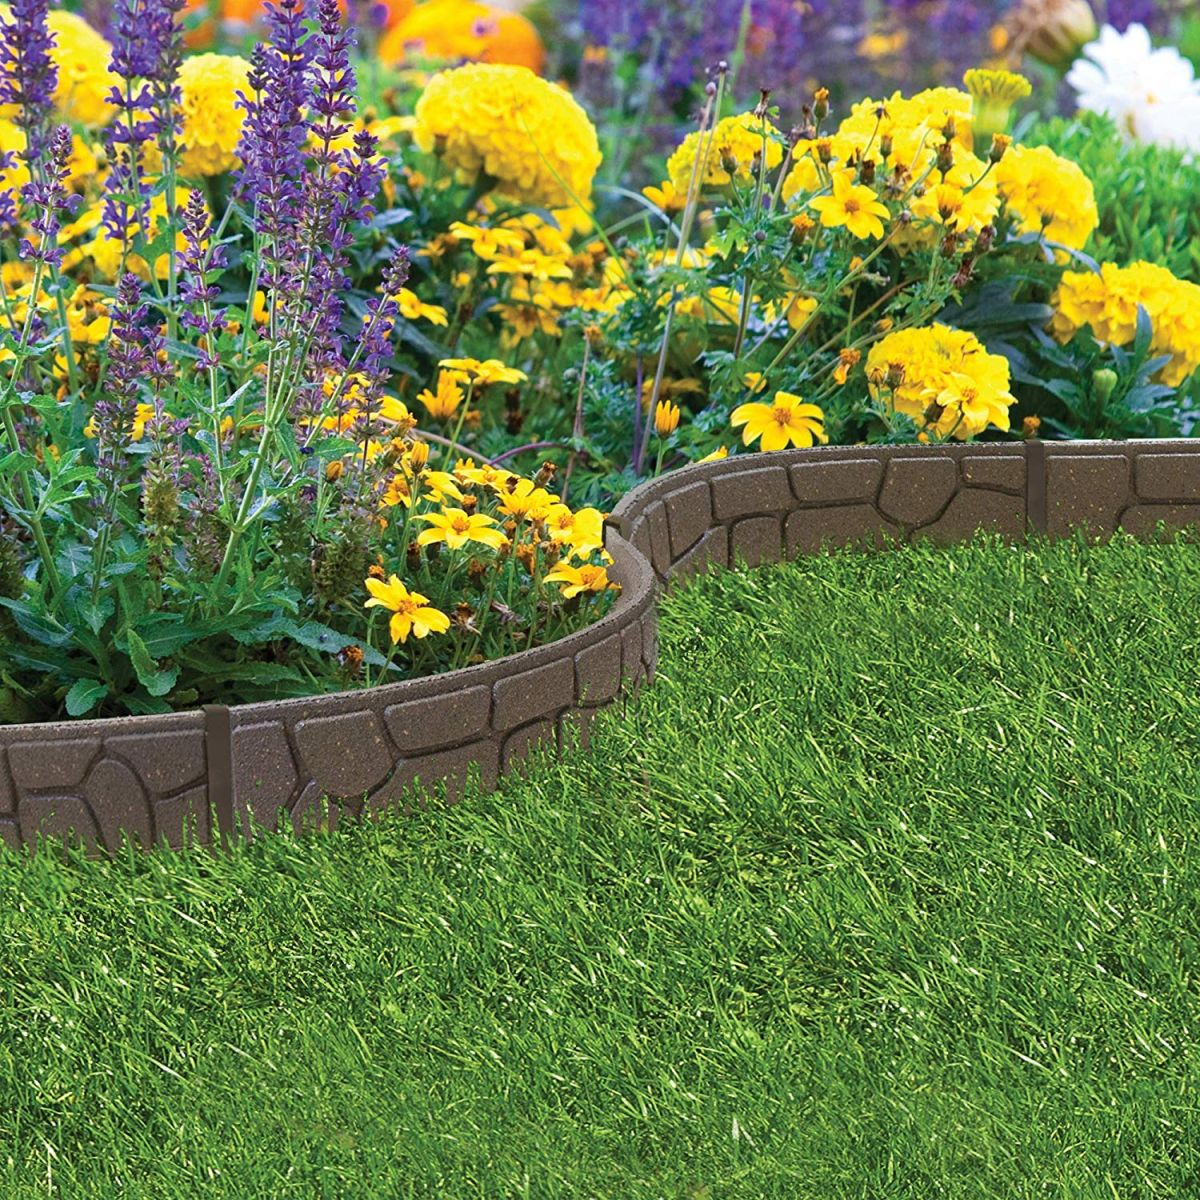 Lawn edging: 8 ideas to keep your borders neat | Real Homes on Backyard Border Ideas  id=69253